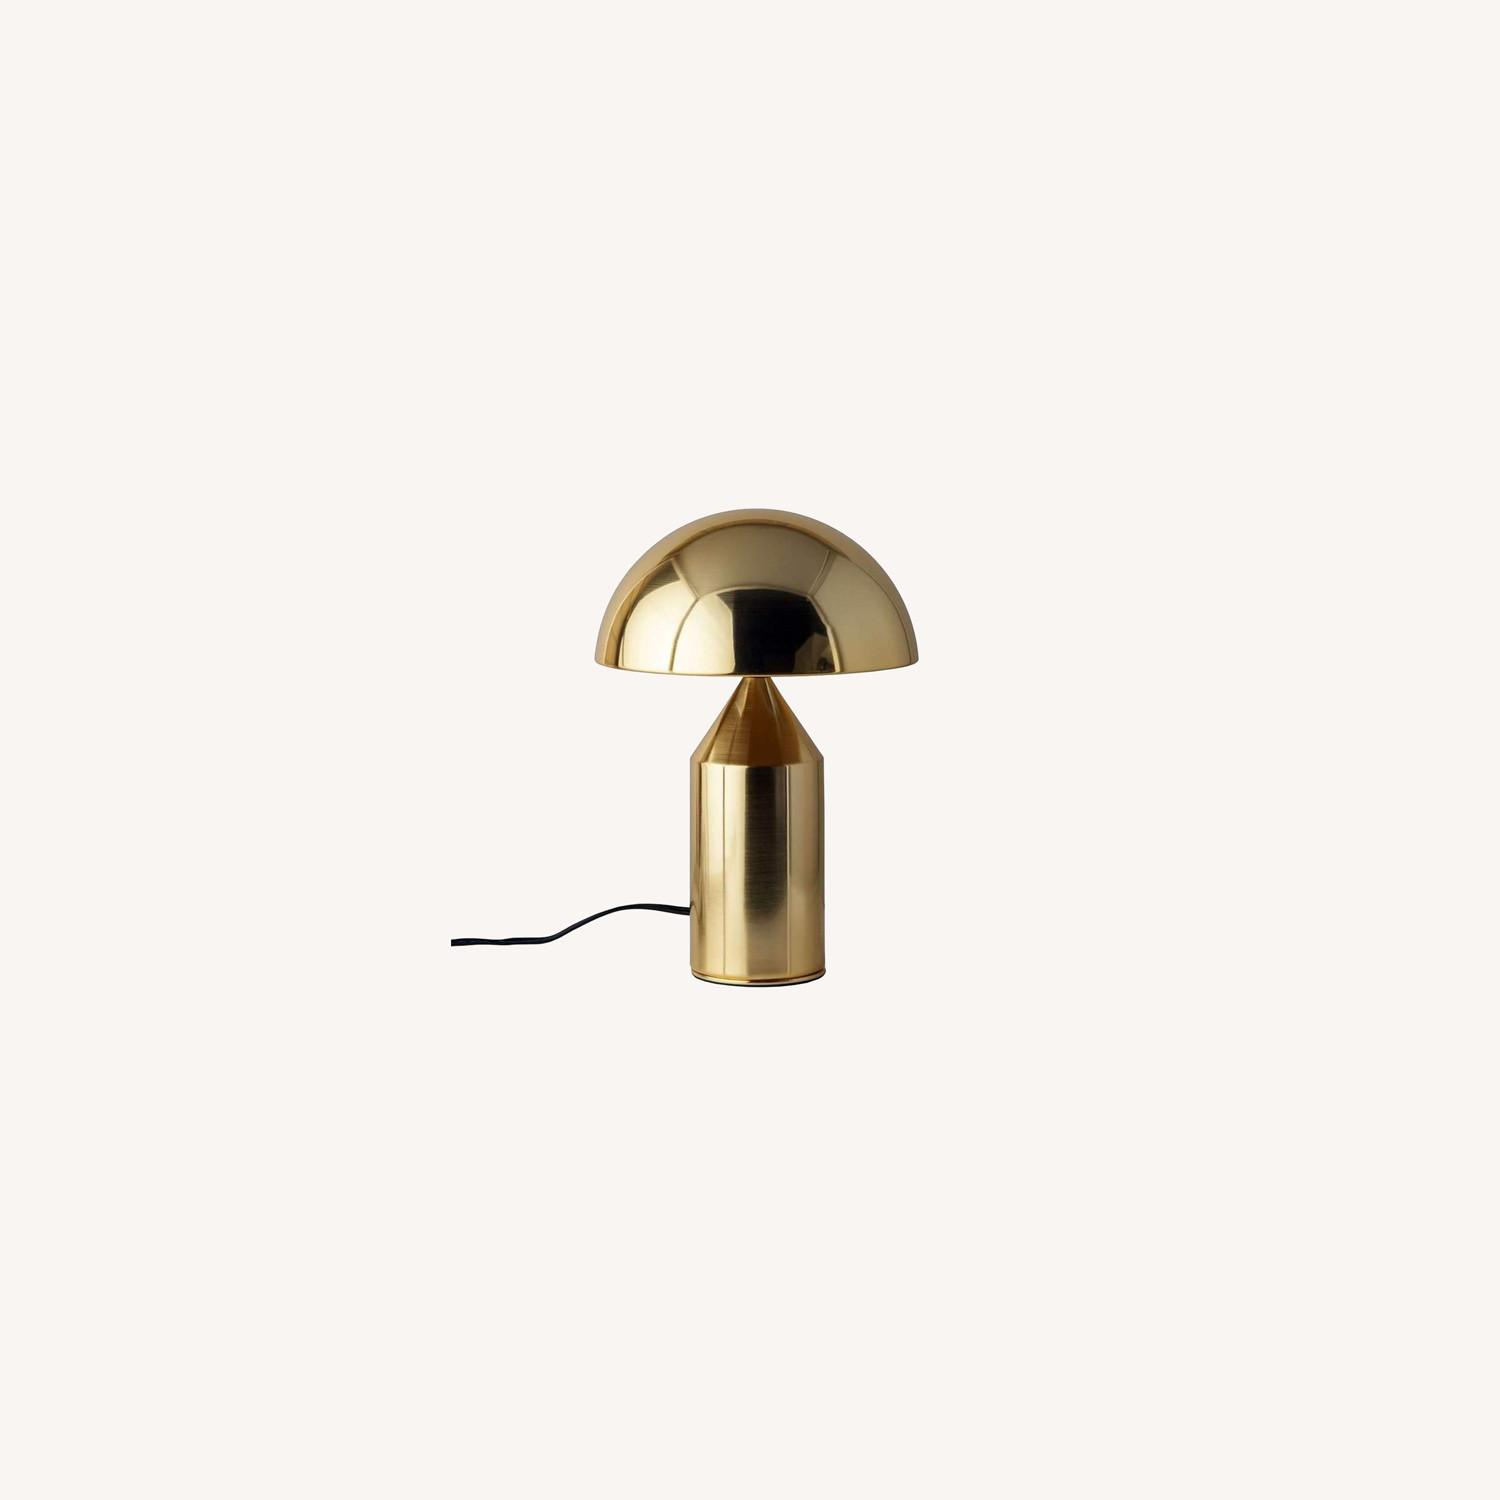 France and Son Vico Magistretti Inspired Lamp - image-0